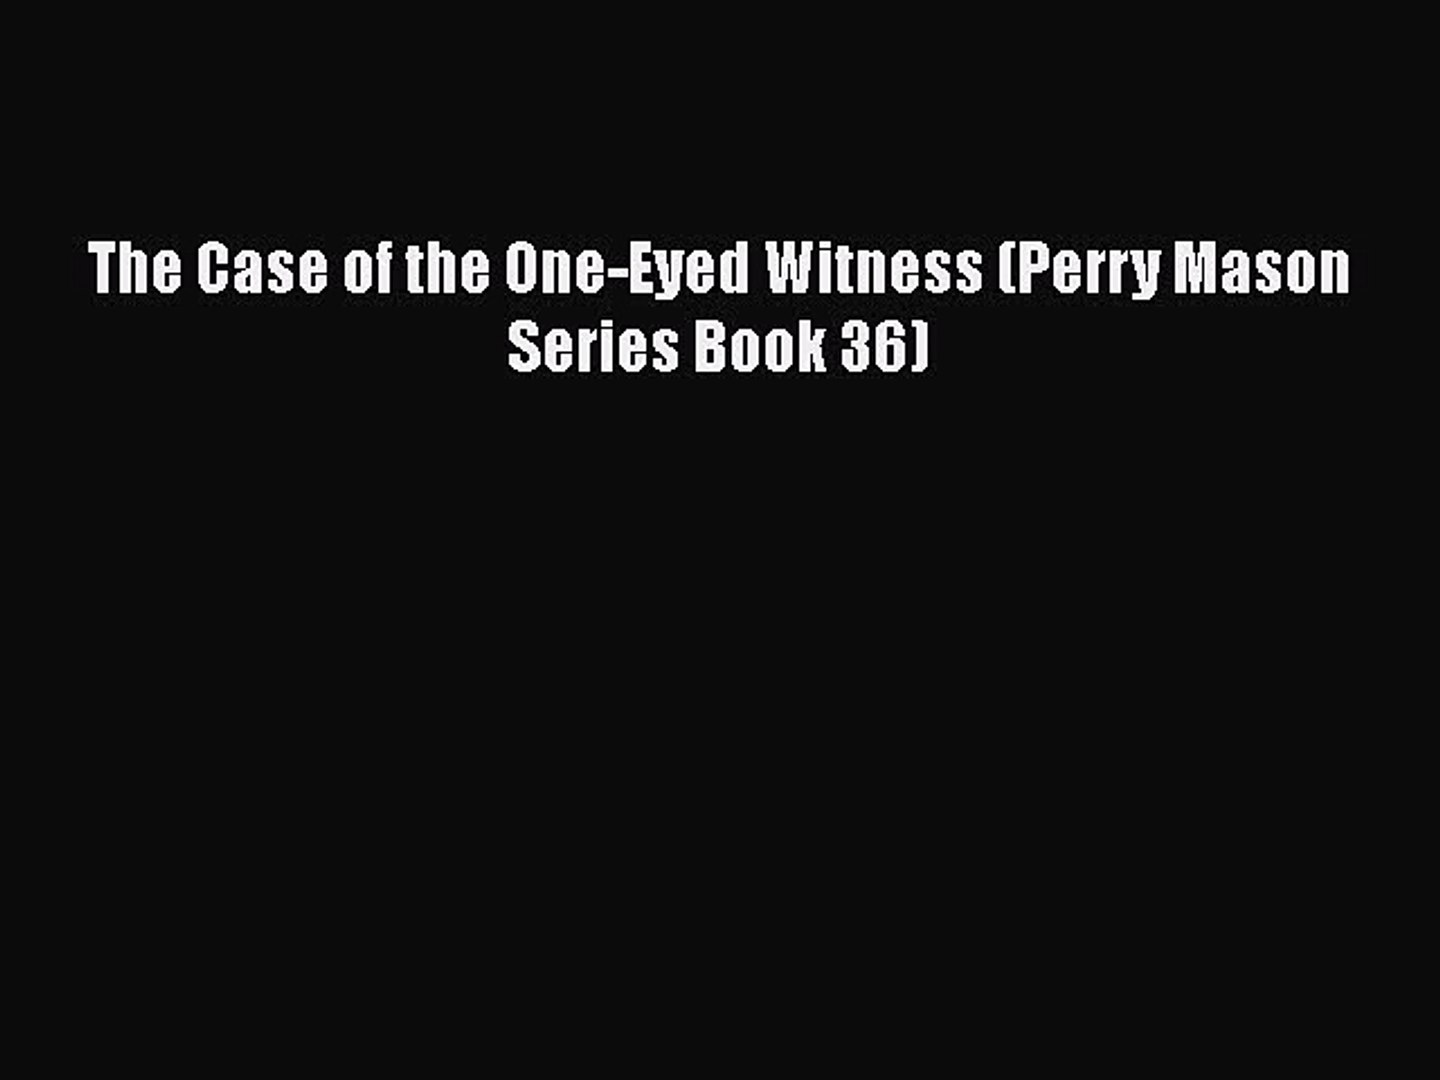 [PDF] The Case of the One-Eyed Witness (Perry Mason Series Book 36) [Download] Online